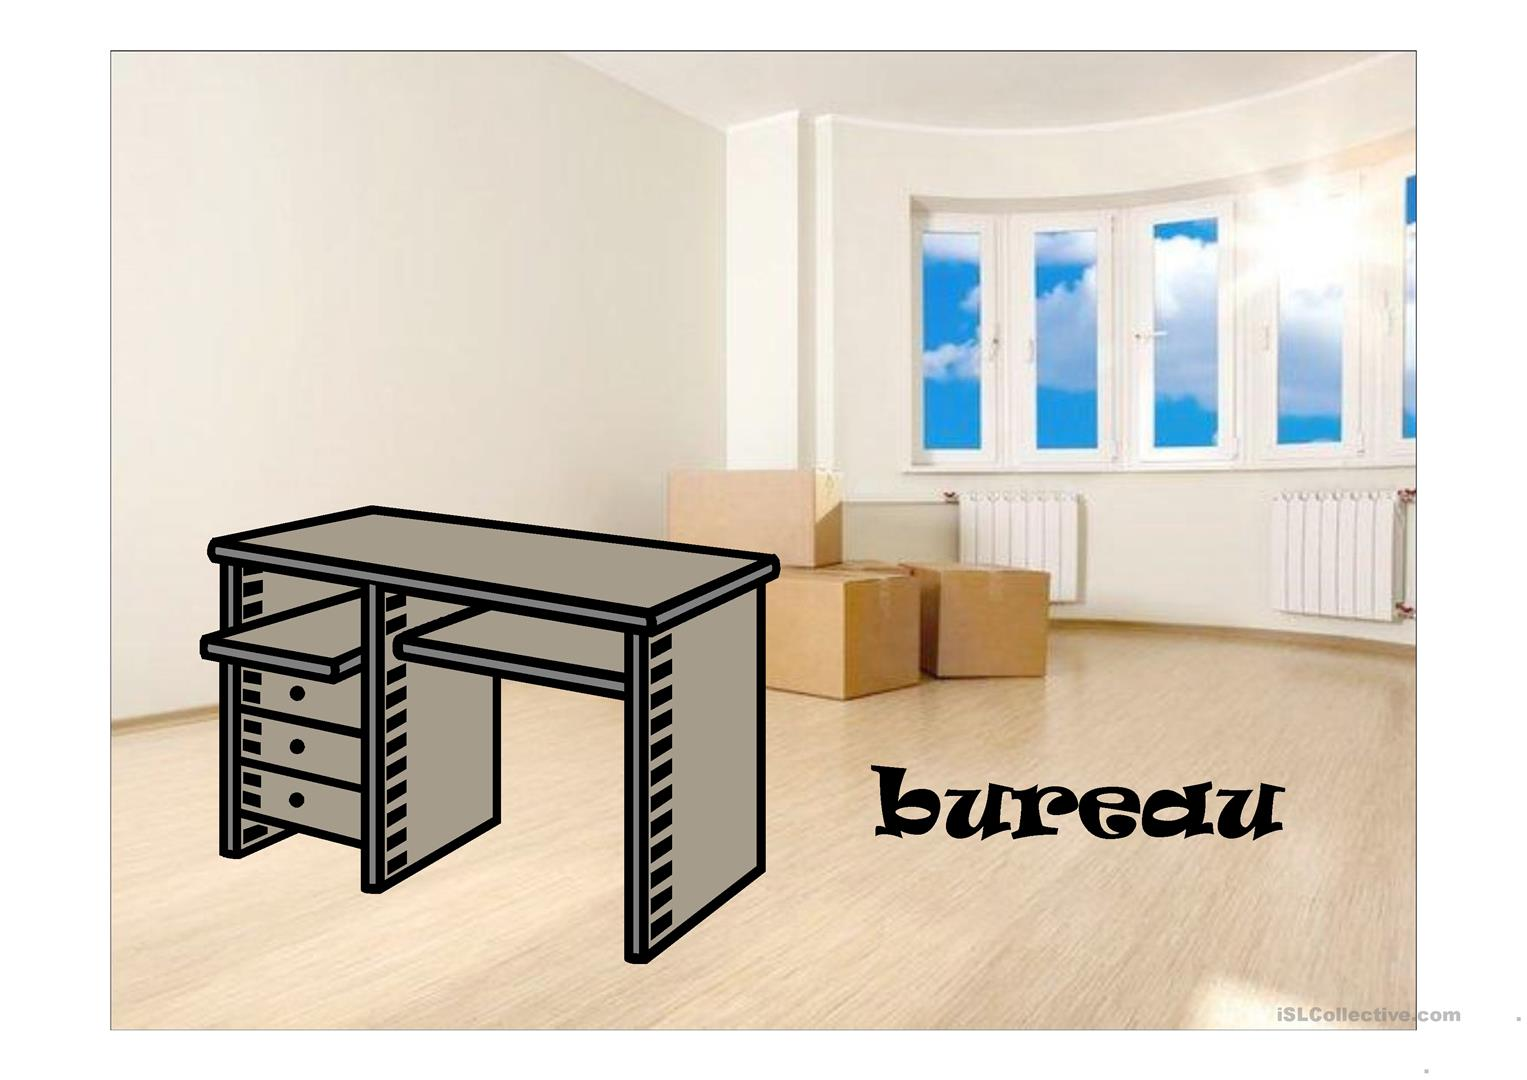 bureau fiche d 39 exercices free esl projectable worksheets made by teachers. Black Bedroom Furniture Sets. Home Design Ideas